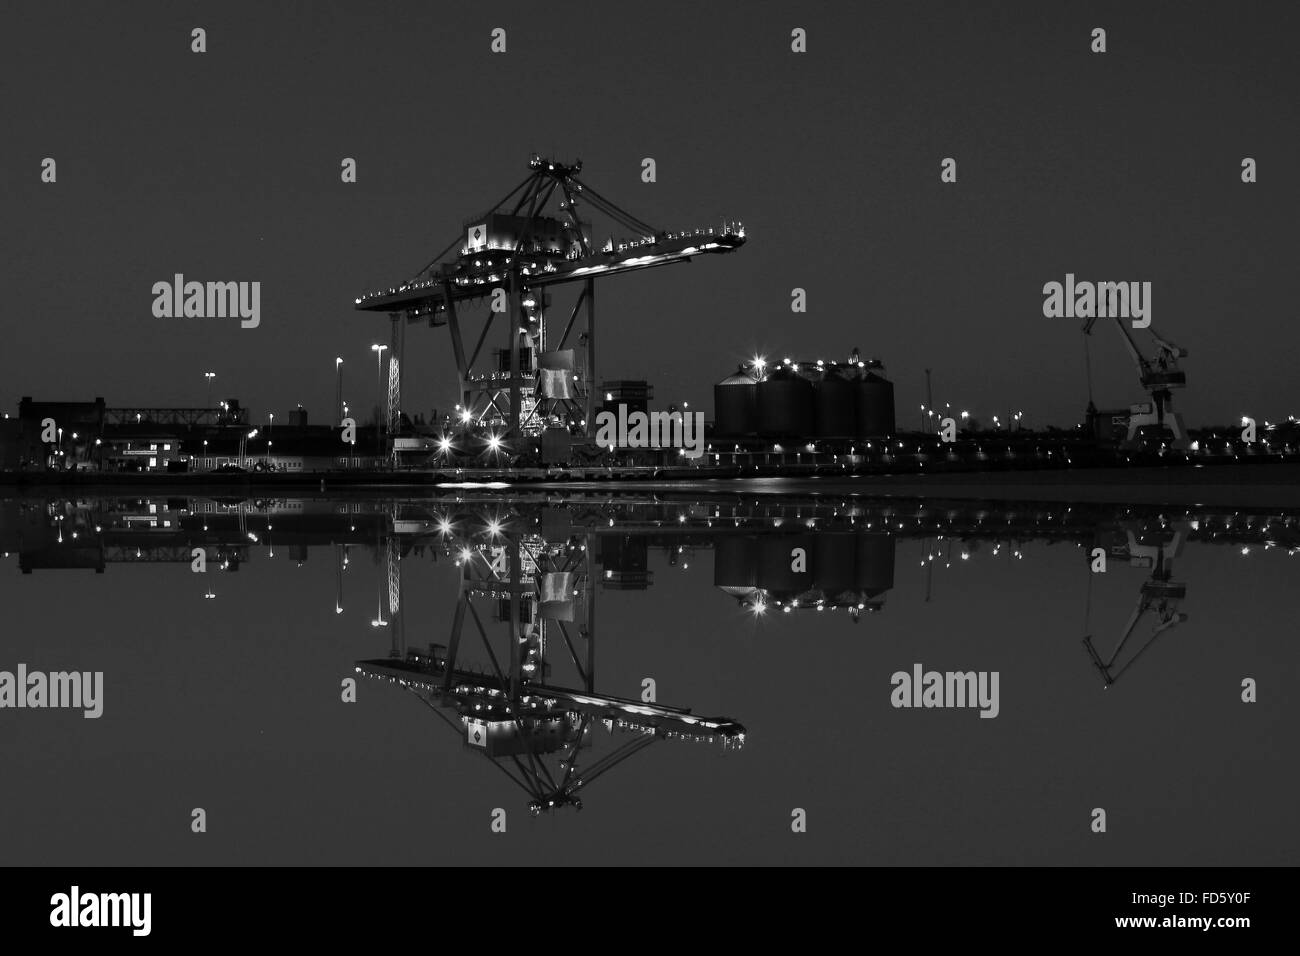 Harbor Cranes Reflecting In Water - Stock Image